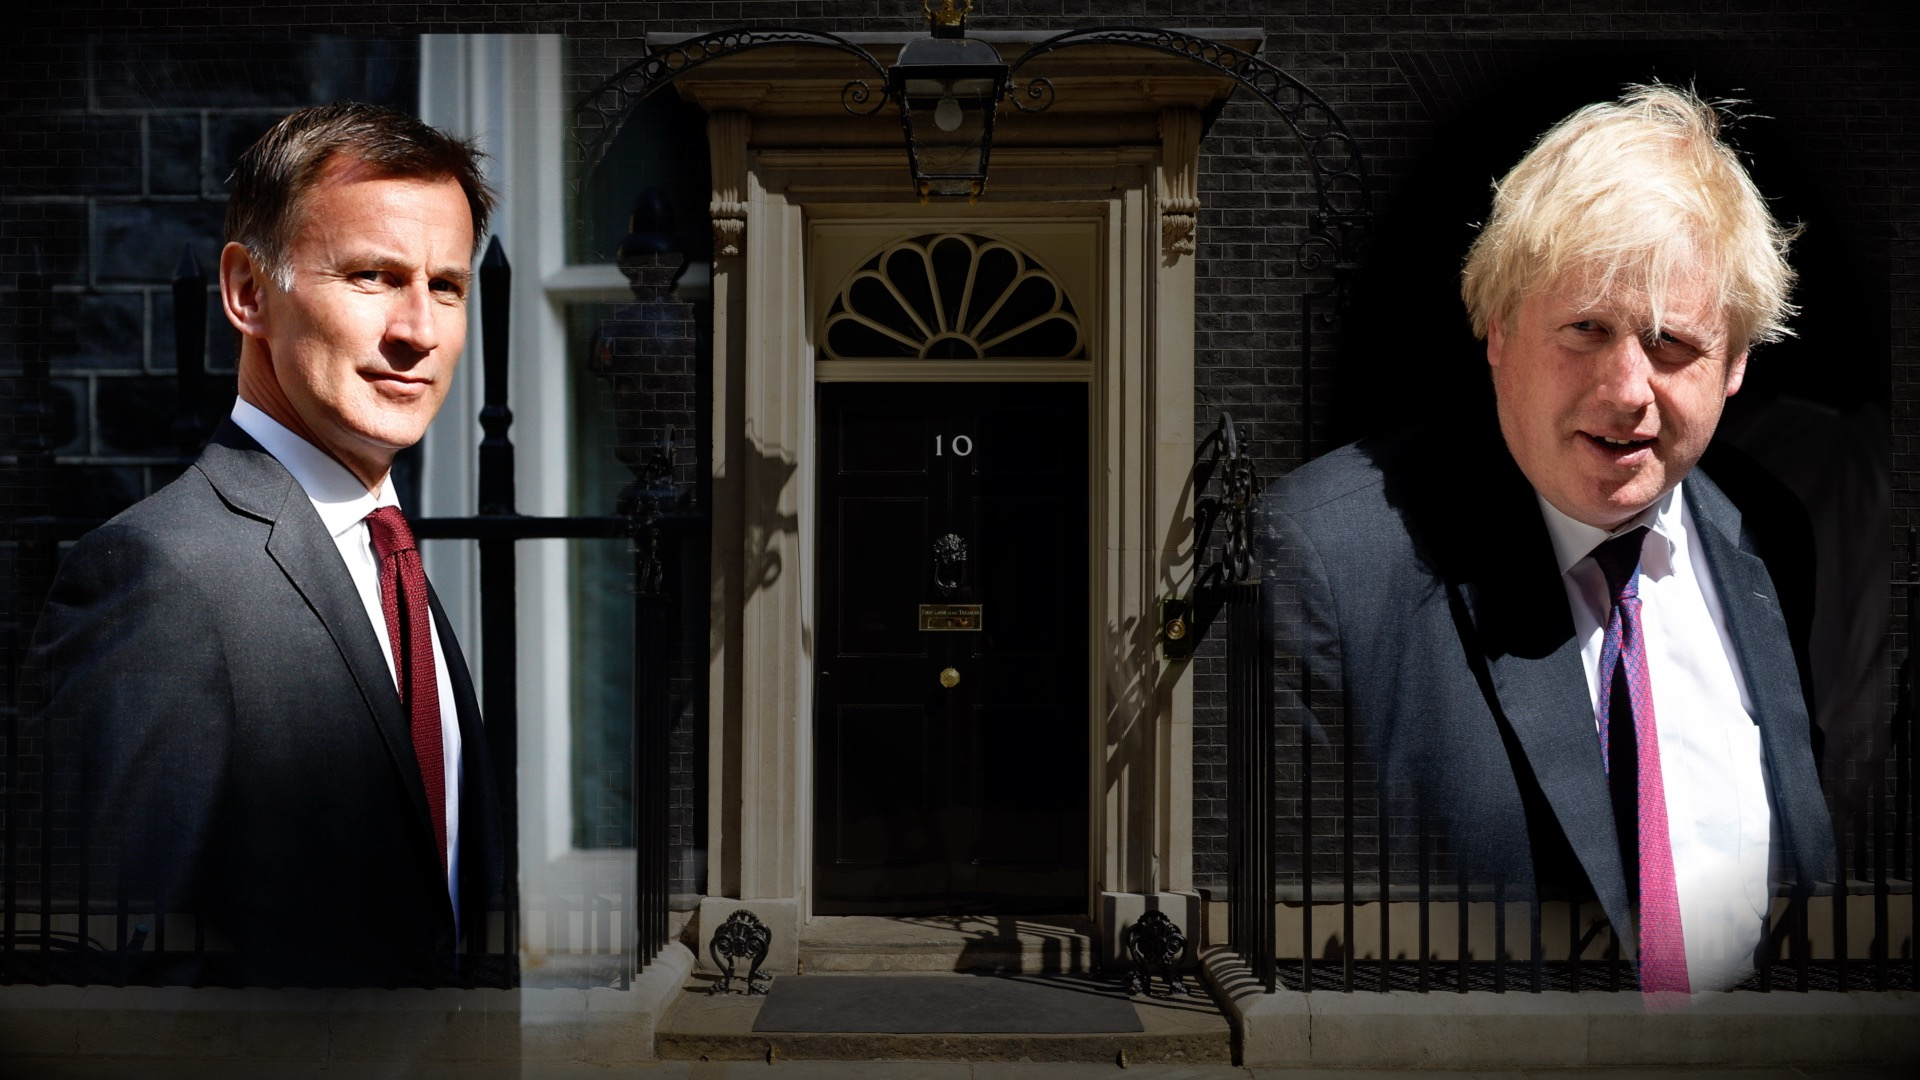 Tory leadership: Stage set for Johnson v Hunt